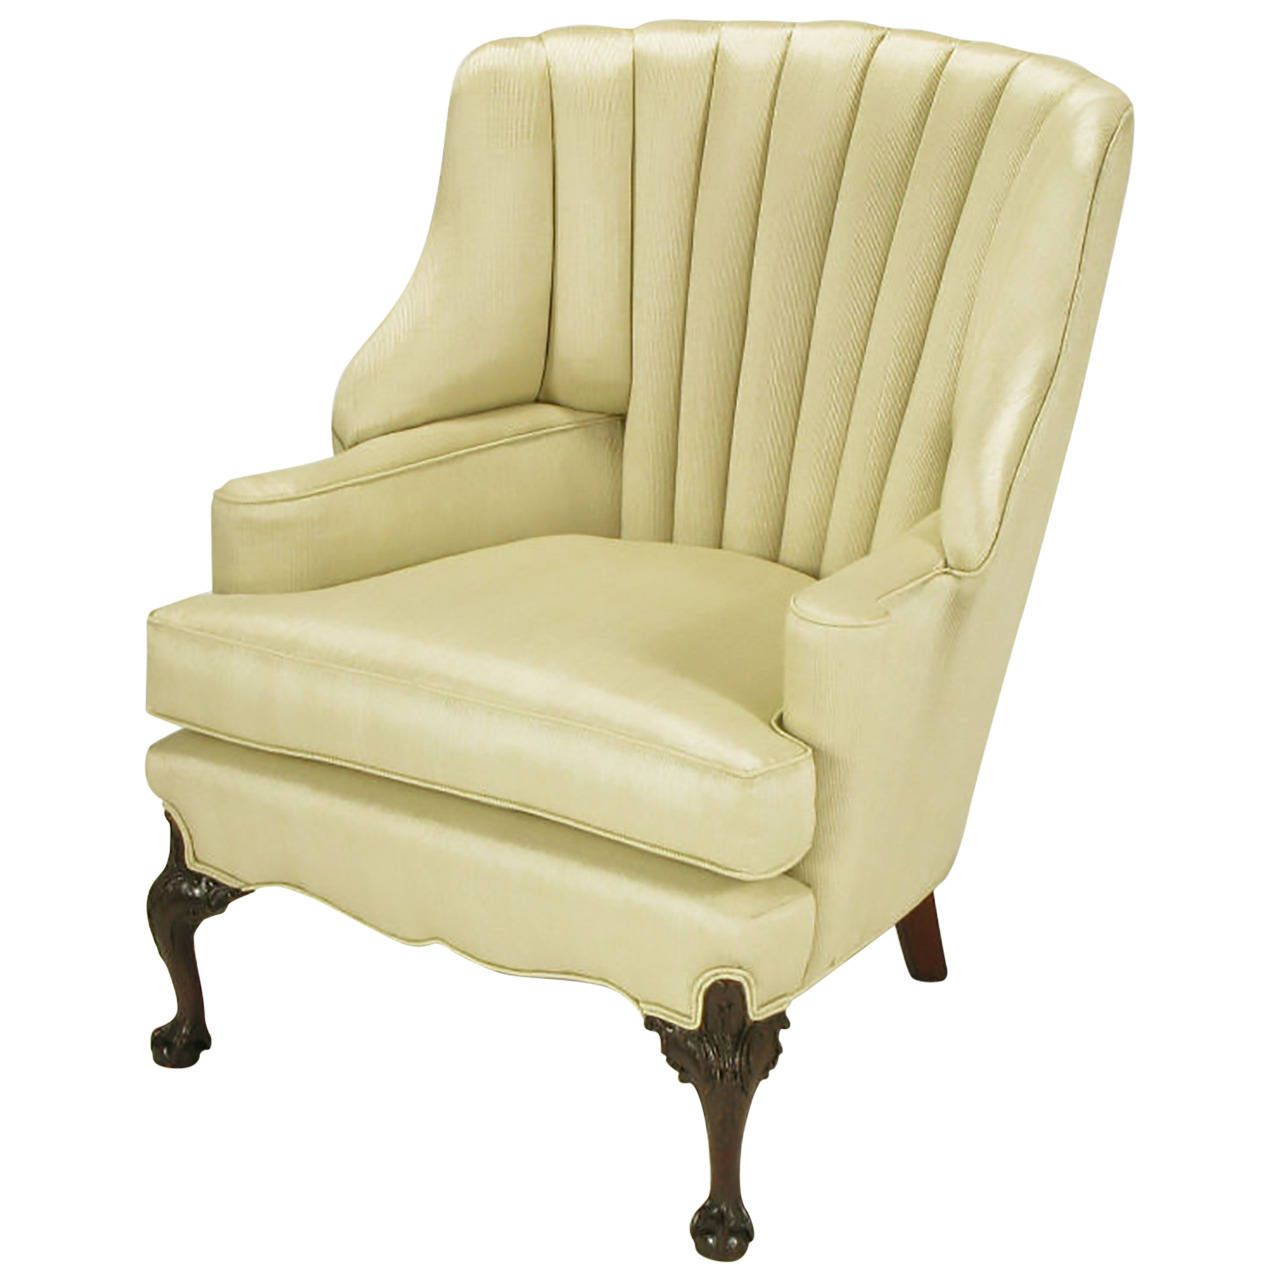 high wingback chairs for sale